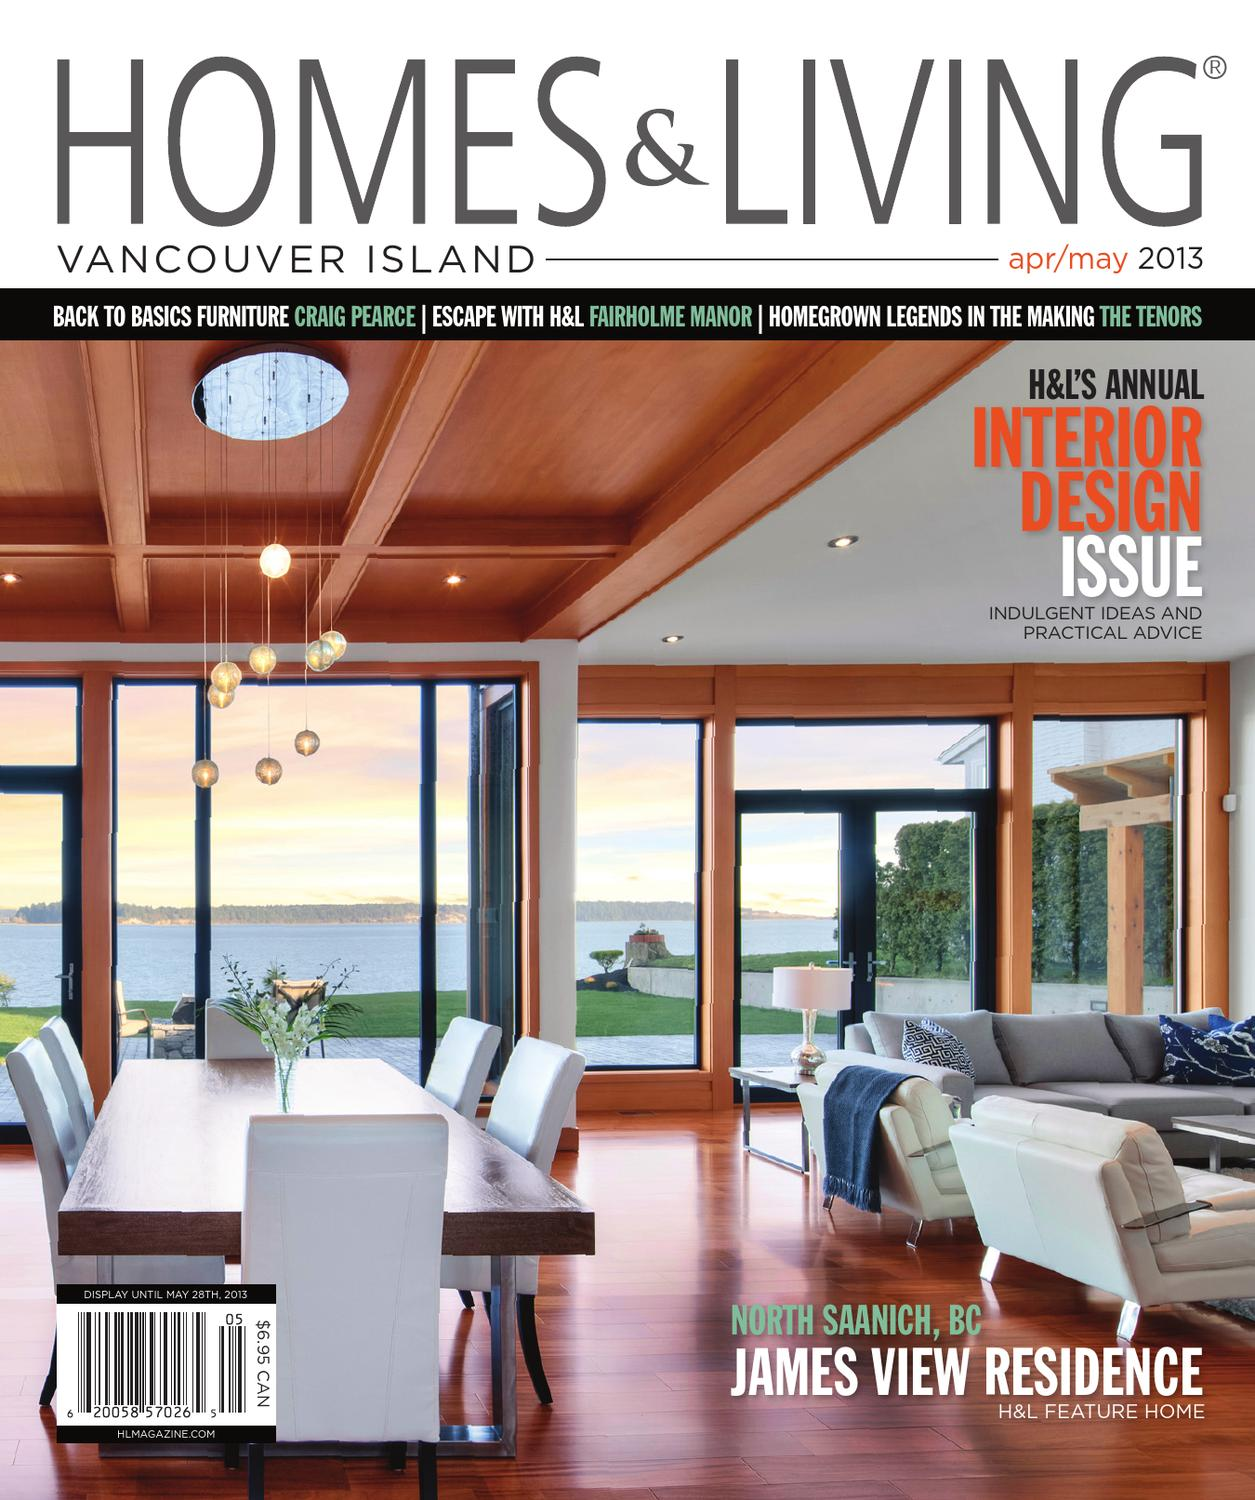 homes u0026 living vancouver island april may 2013 issue by homes